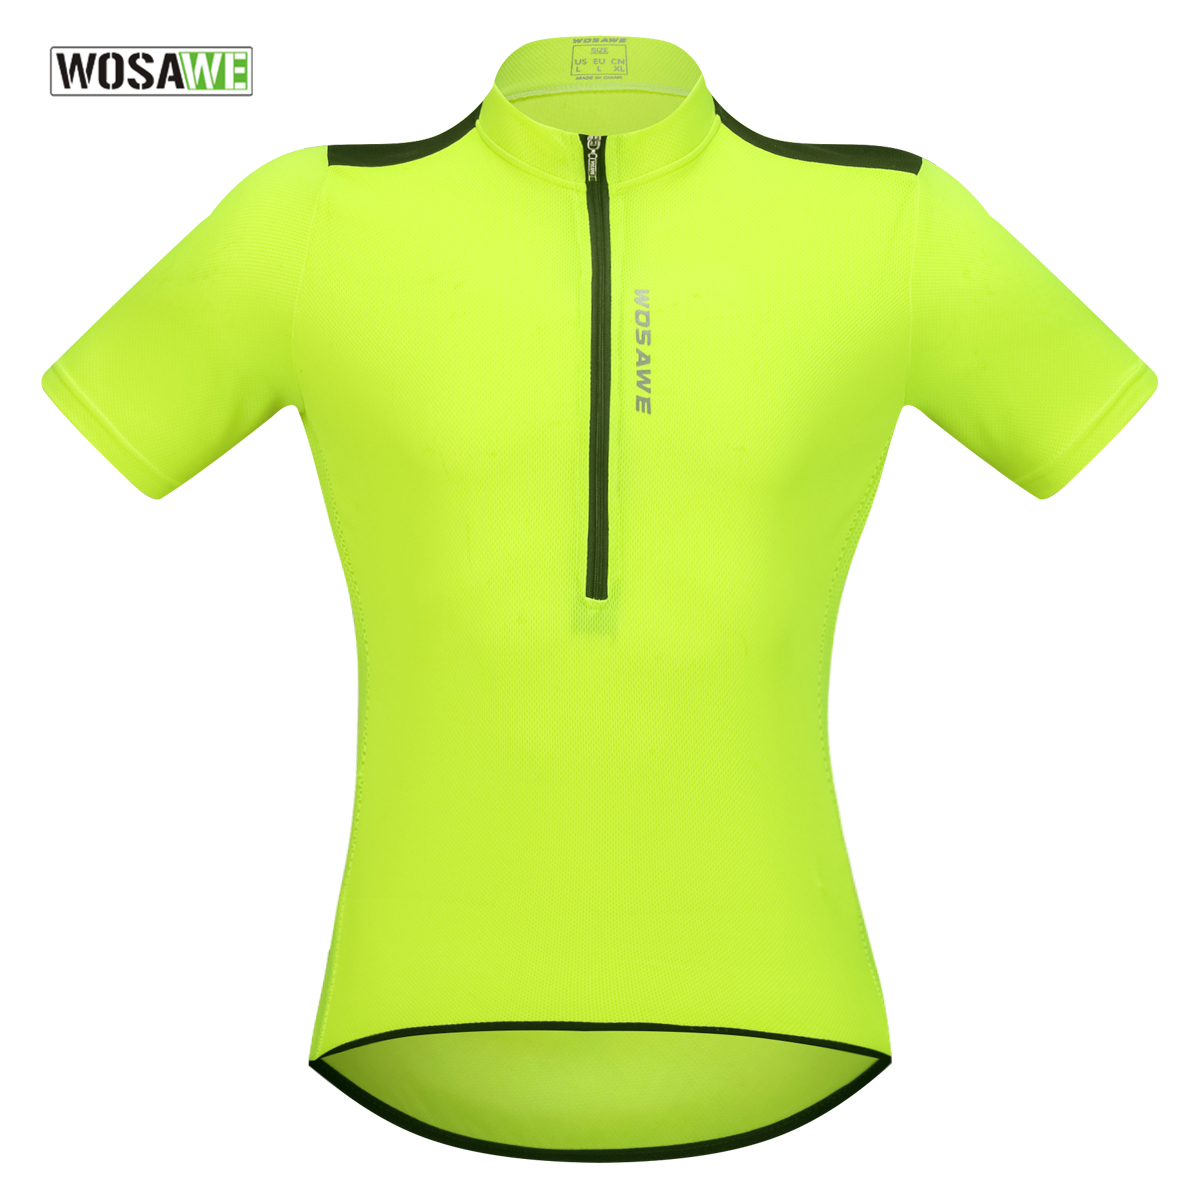 WOSAWE Cycling Jersey 2018 Pro Team Mtb Jersey Breathability Half Zip Maillot Ciclismo Short Sleeved Bike Shirt